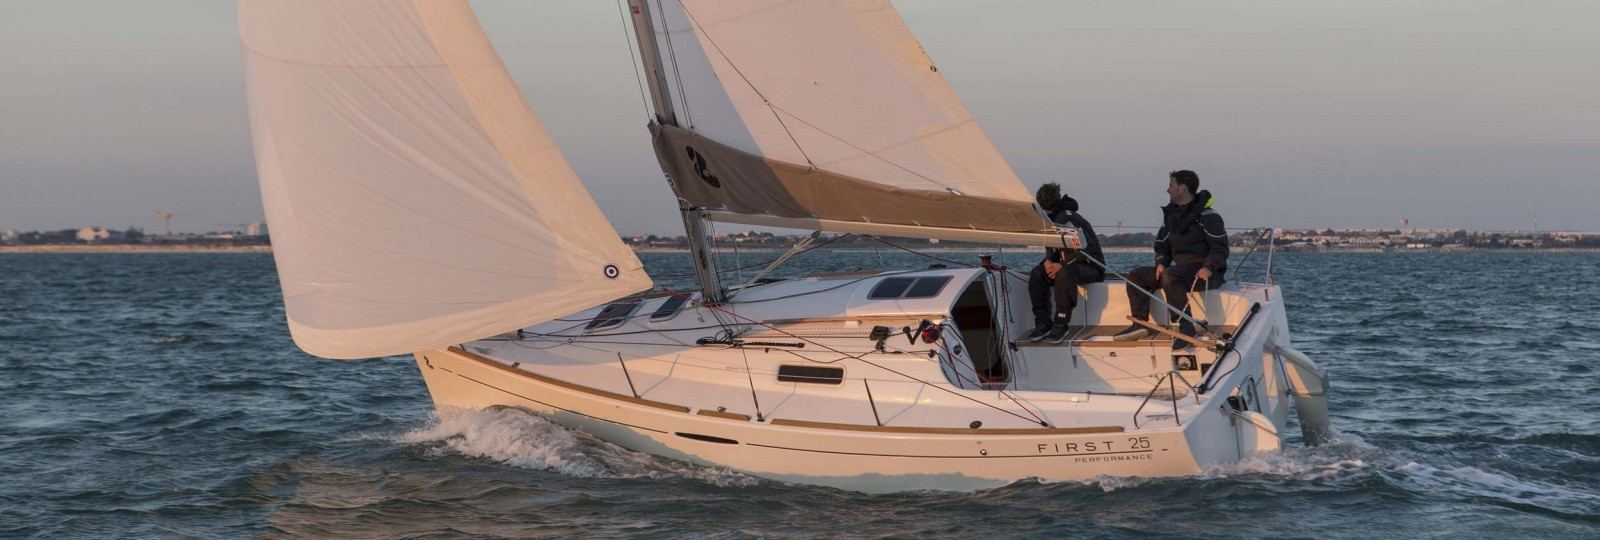 Beneteau First 25 running